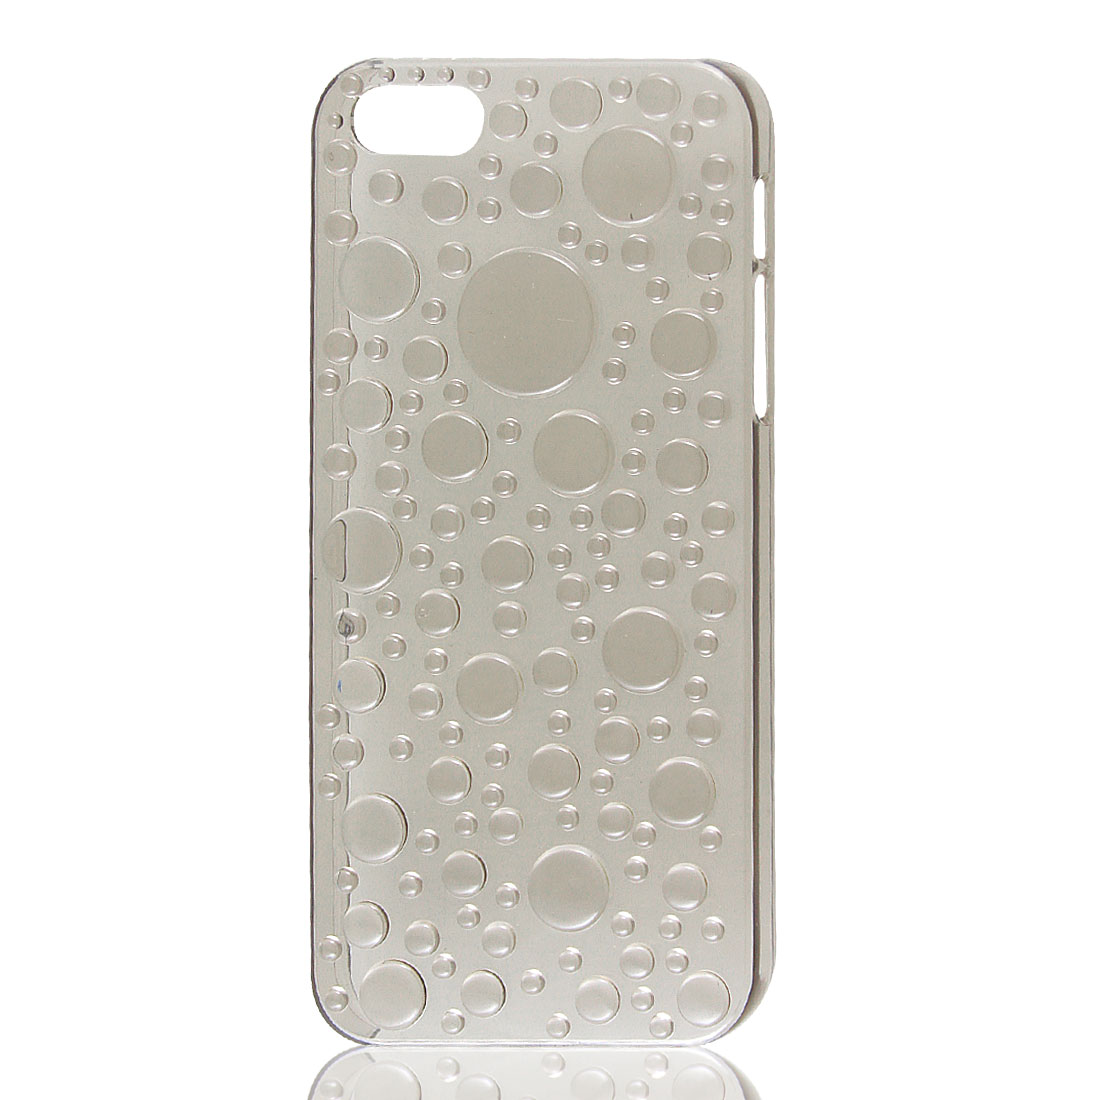 Clear Gray 3D Water Drop Raindrop Hard Back Case Cover for Apple iPhone 5 5G